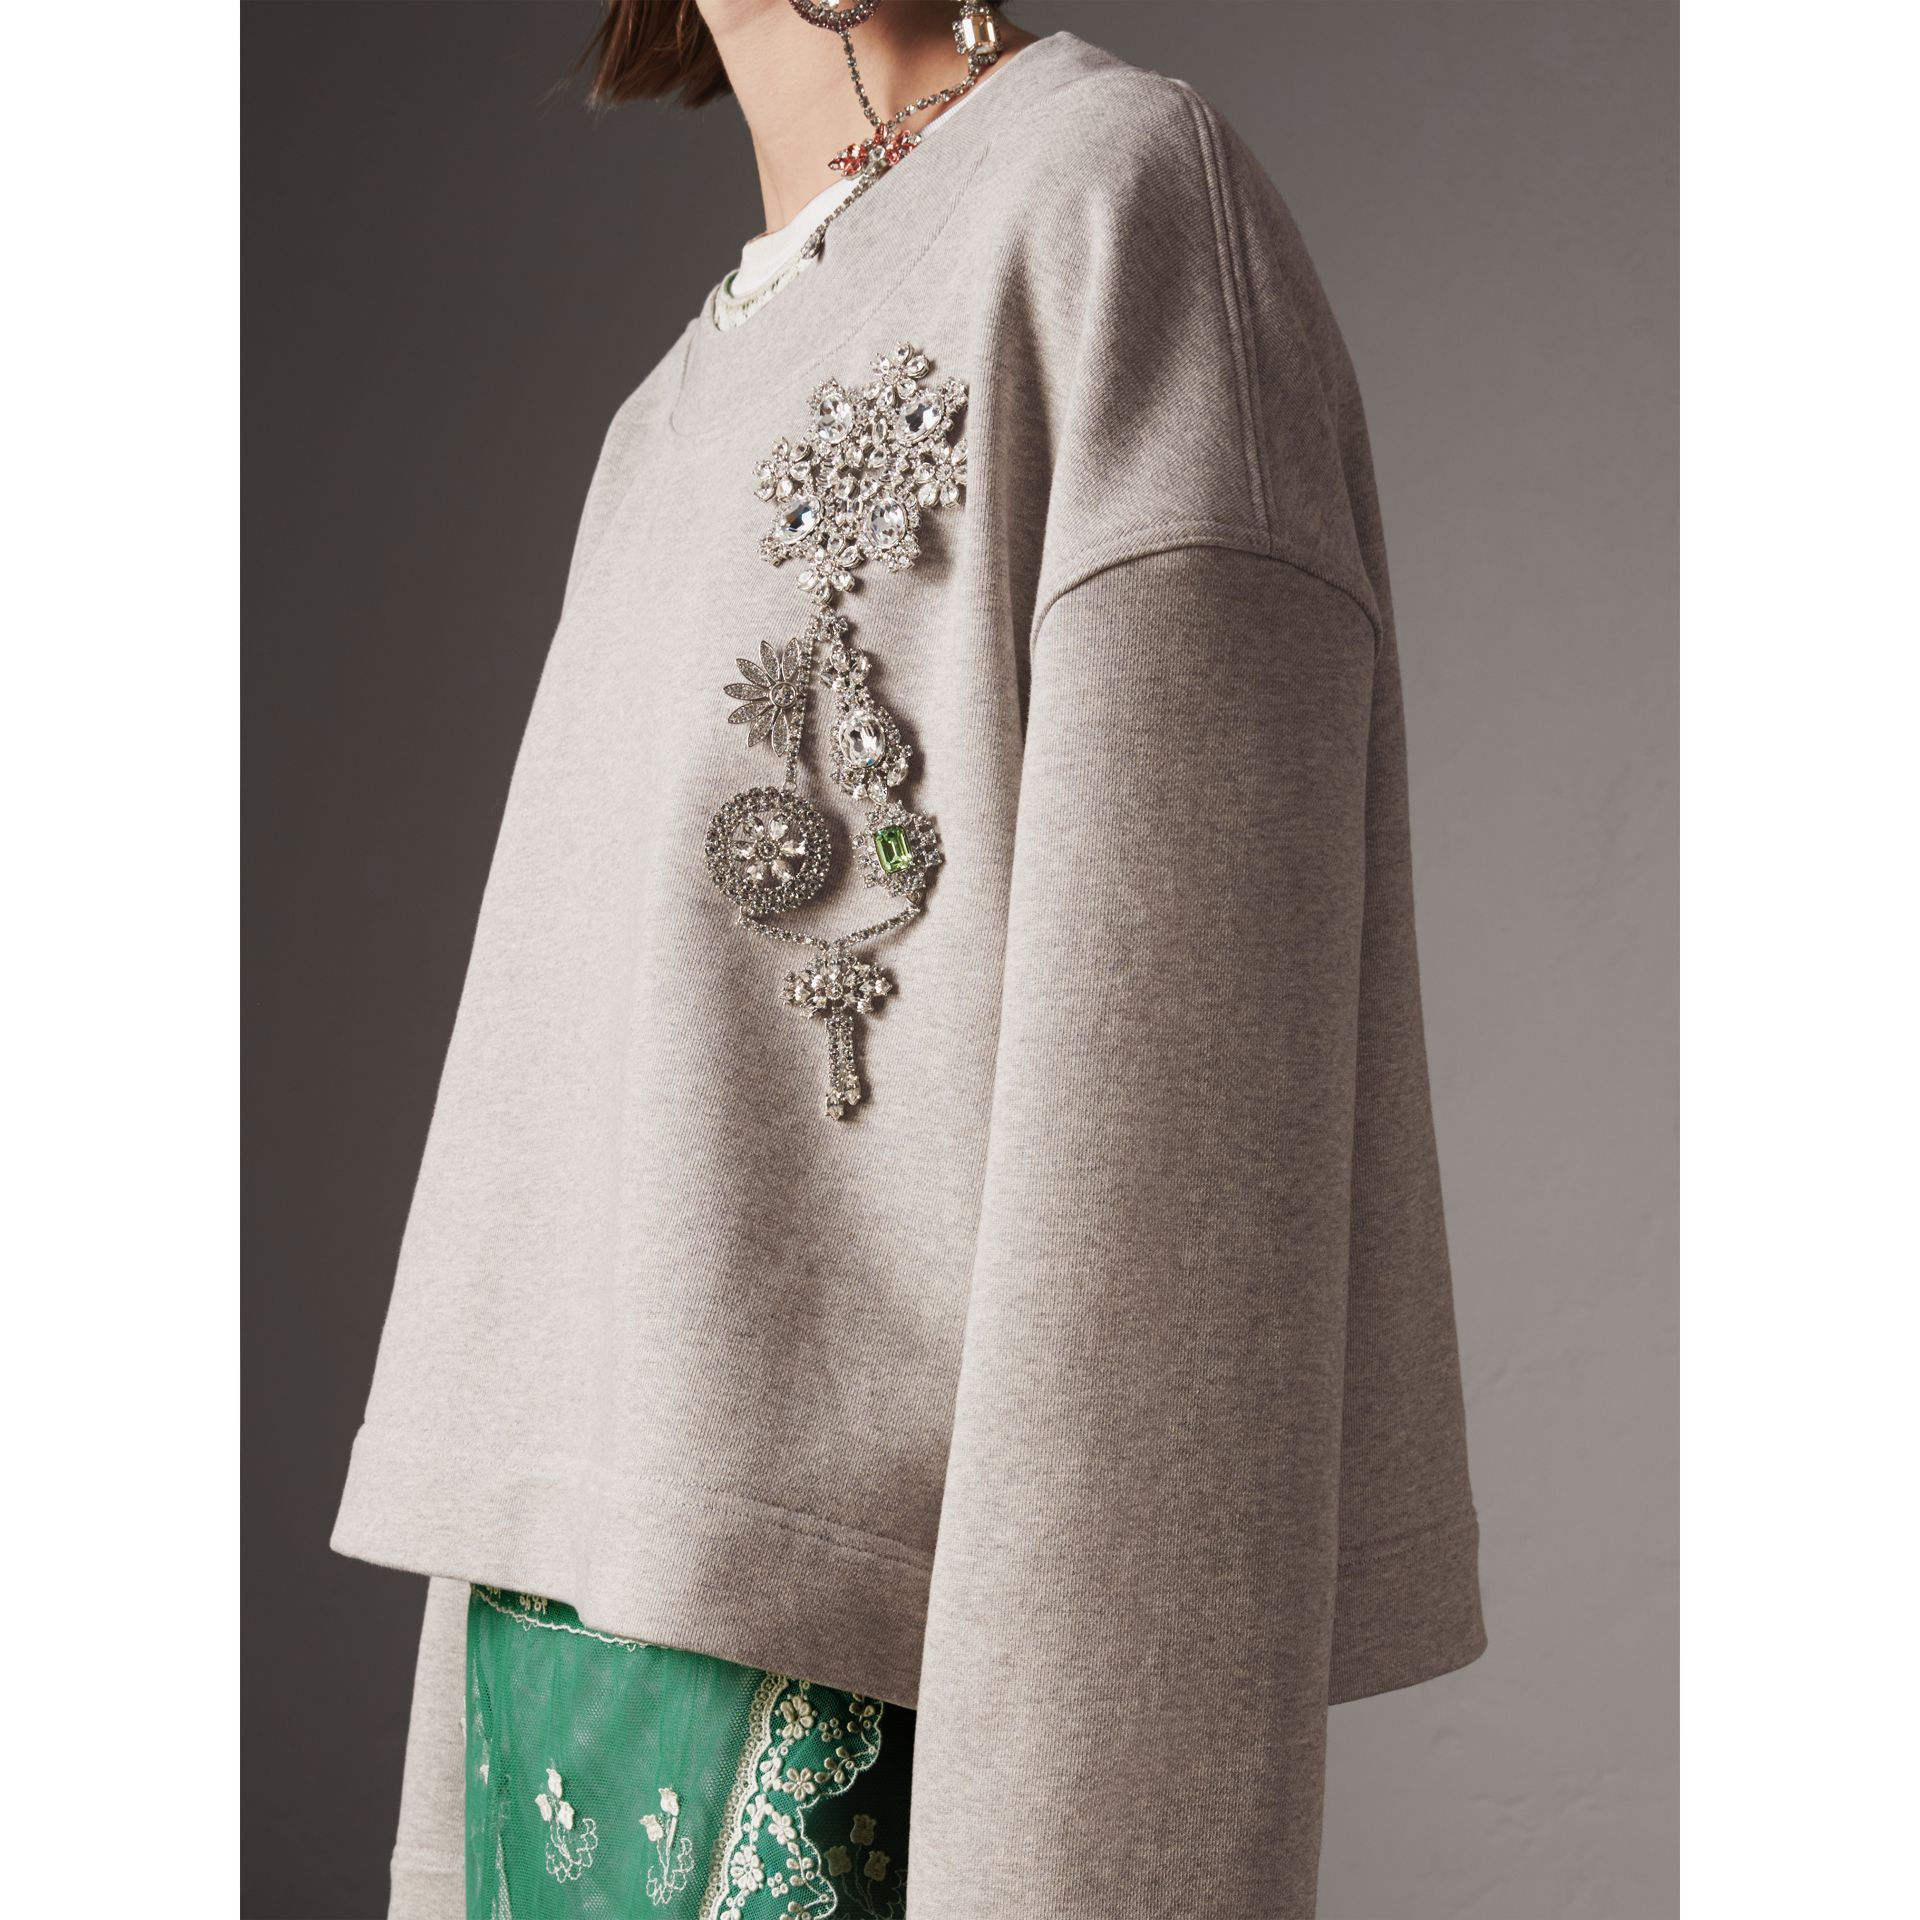 Cropped Sweatshirt with Crystal Brooch in Light Grey Melange - Women | Burberry Hong Kong - gallery image 1